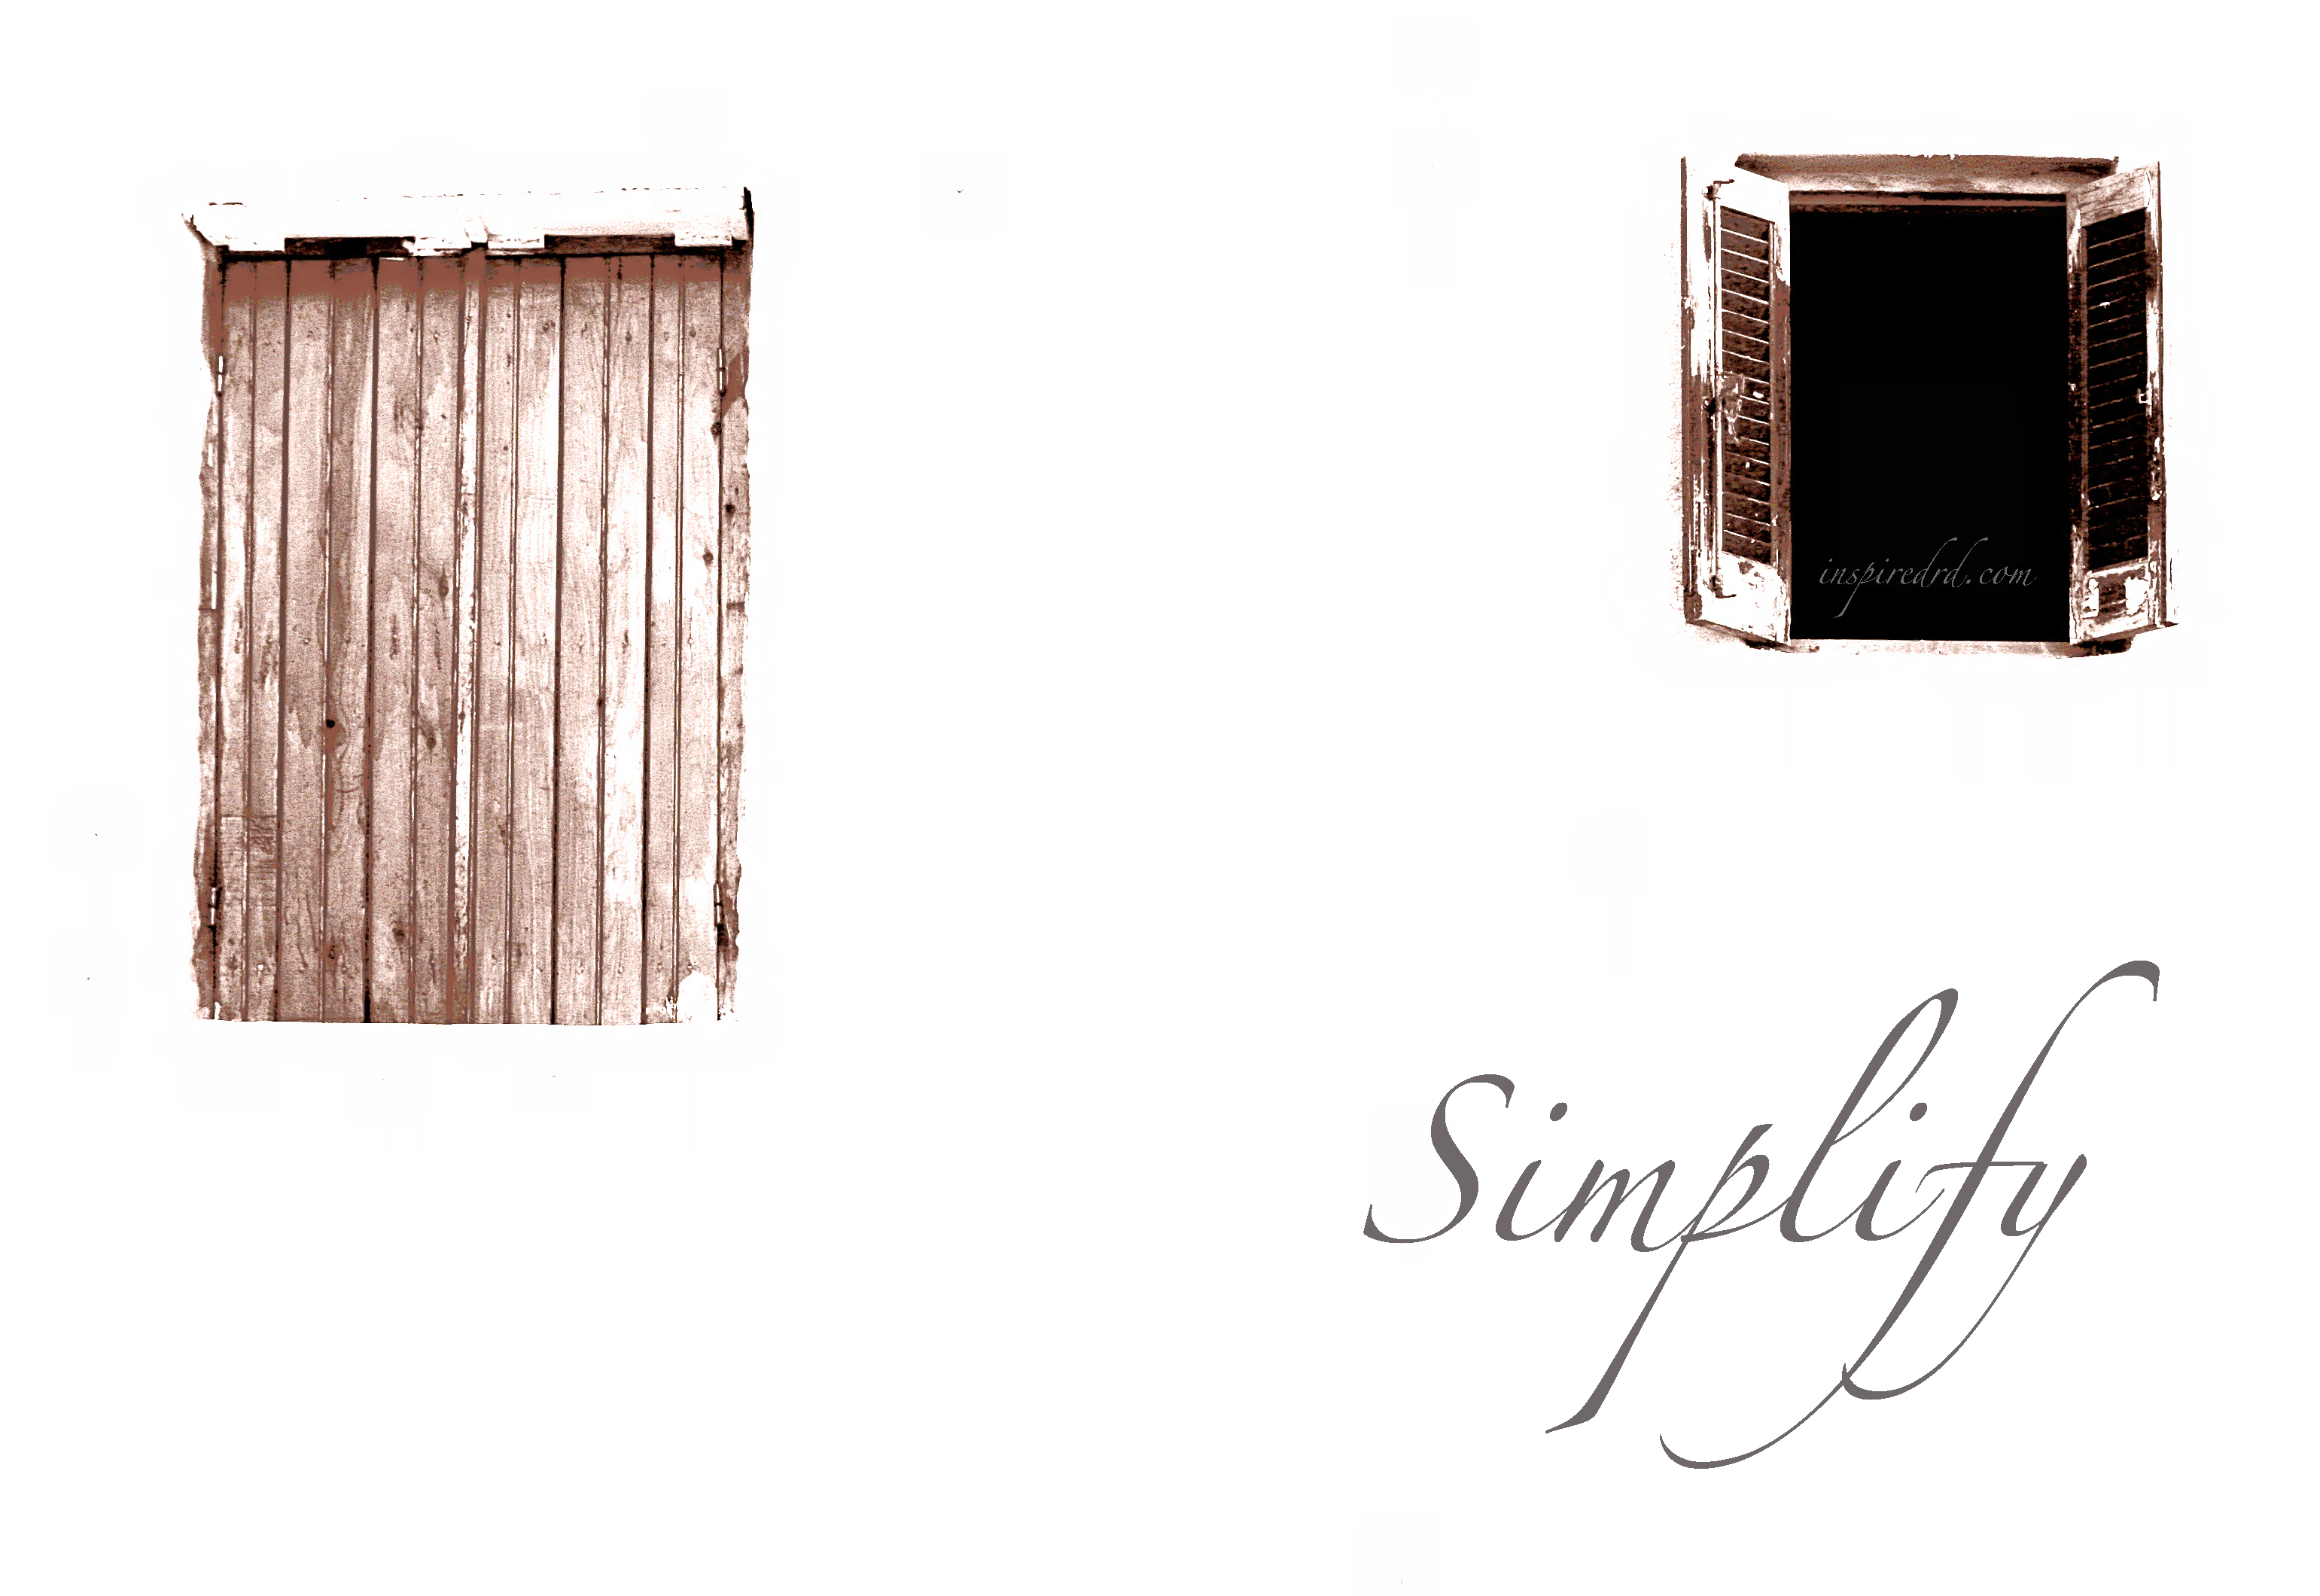 Why I want to simplify (and how you can too) from inspiredrd.com